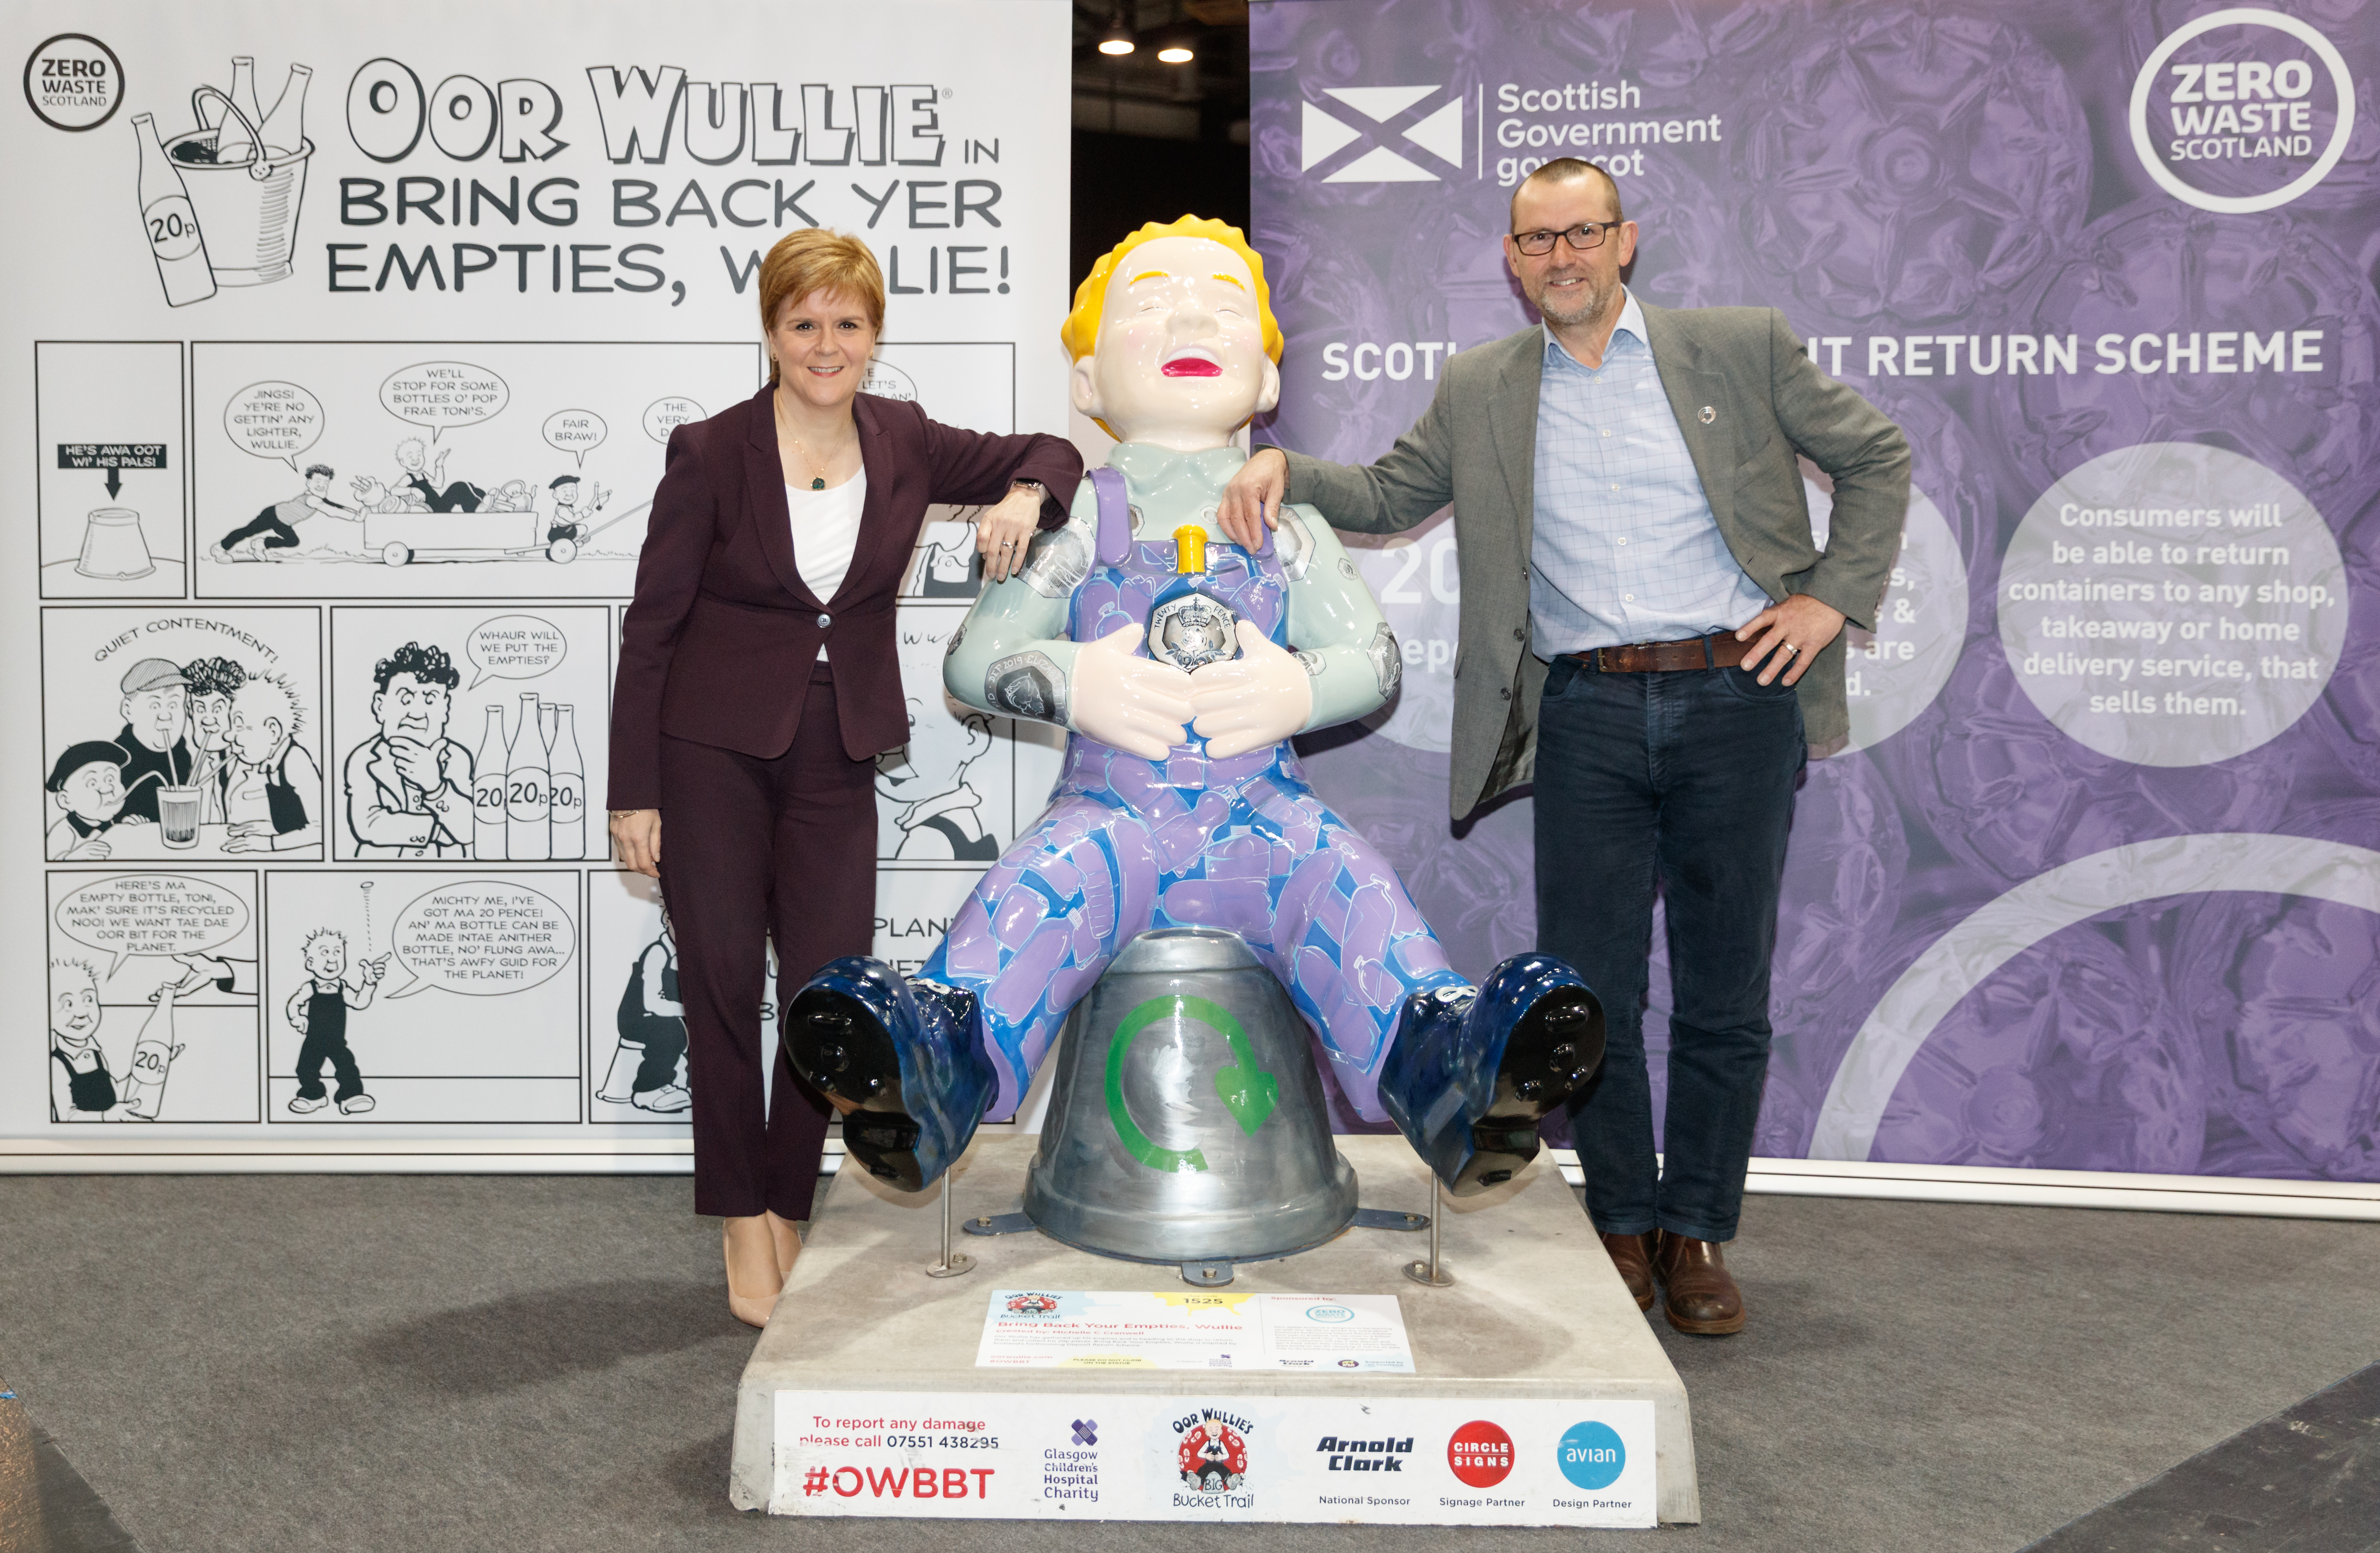 First Minister Nicola Sturgeon launches the Farewell Weekend for Oor Wullie's BIG Bucket Trail at the SEC, Glasgow on 13th September 2019.  Picture shows First Minister Nicola Sturgeon with Iain Gulland, CEO of Zero Waste Scotland.